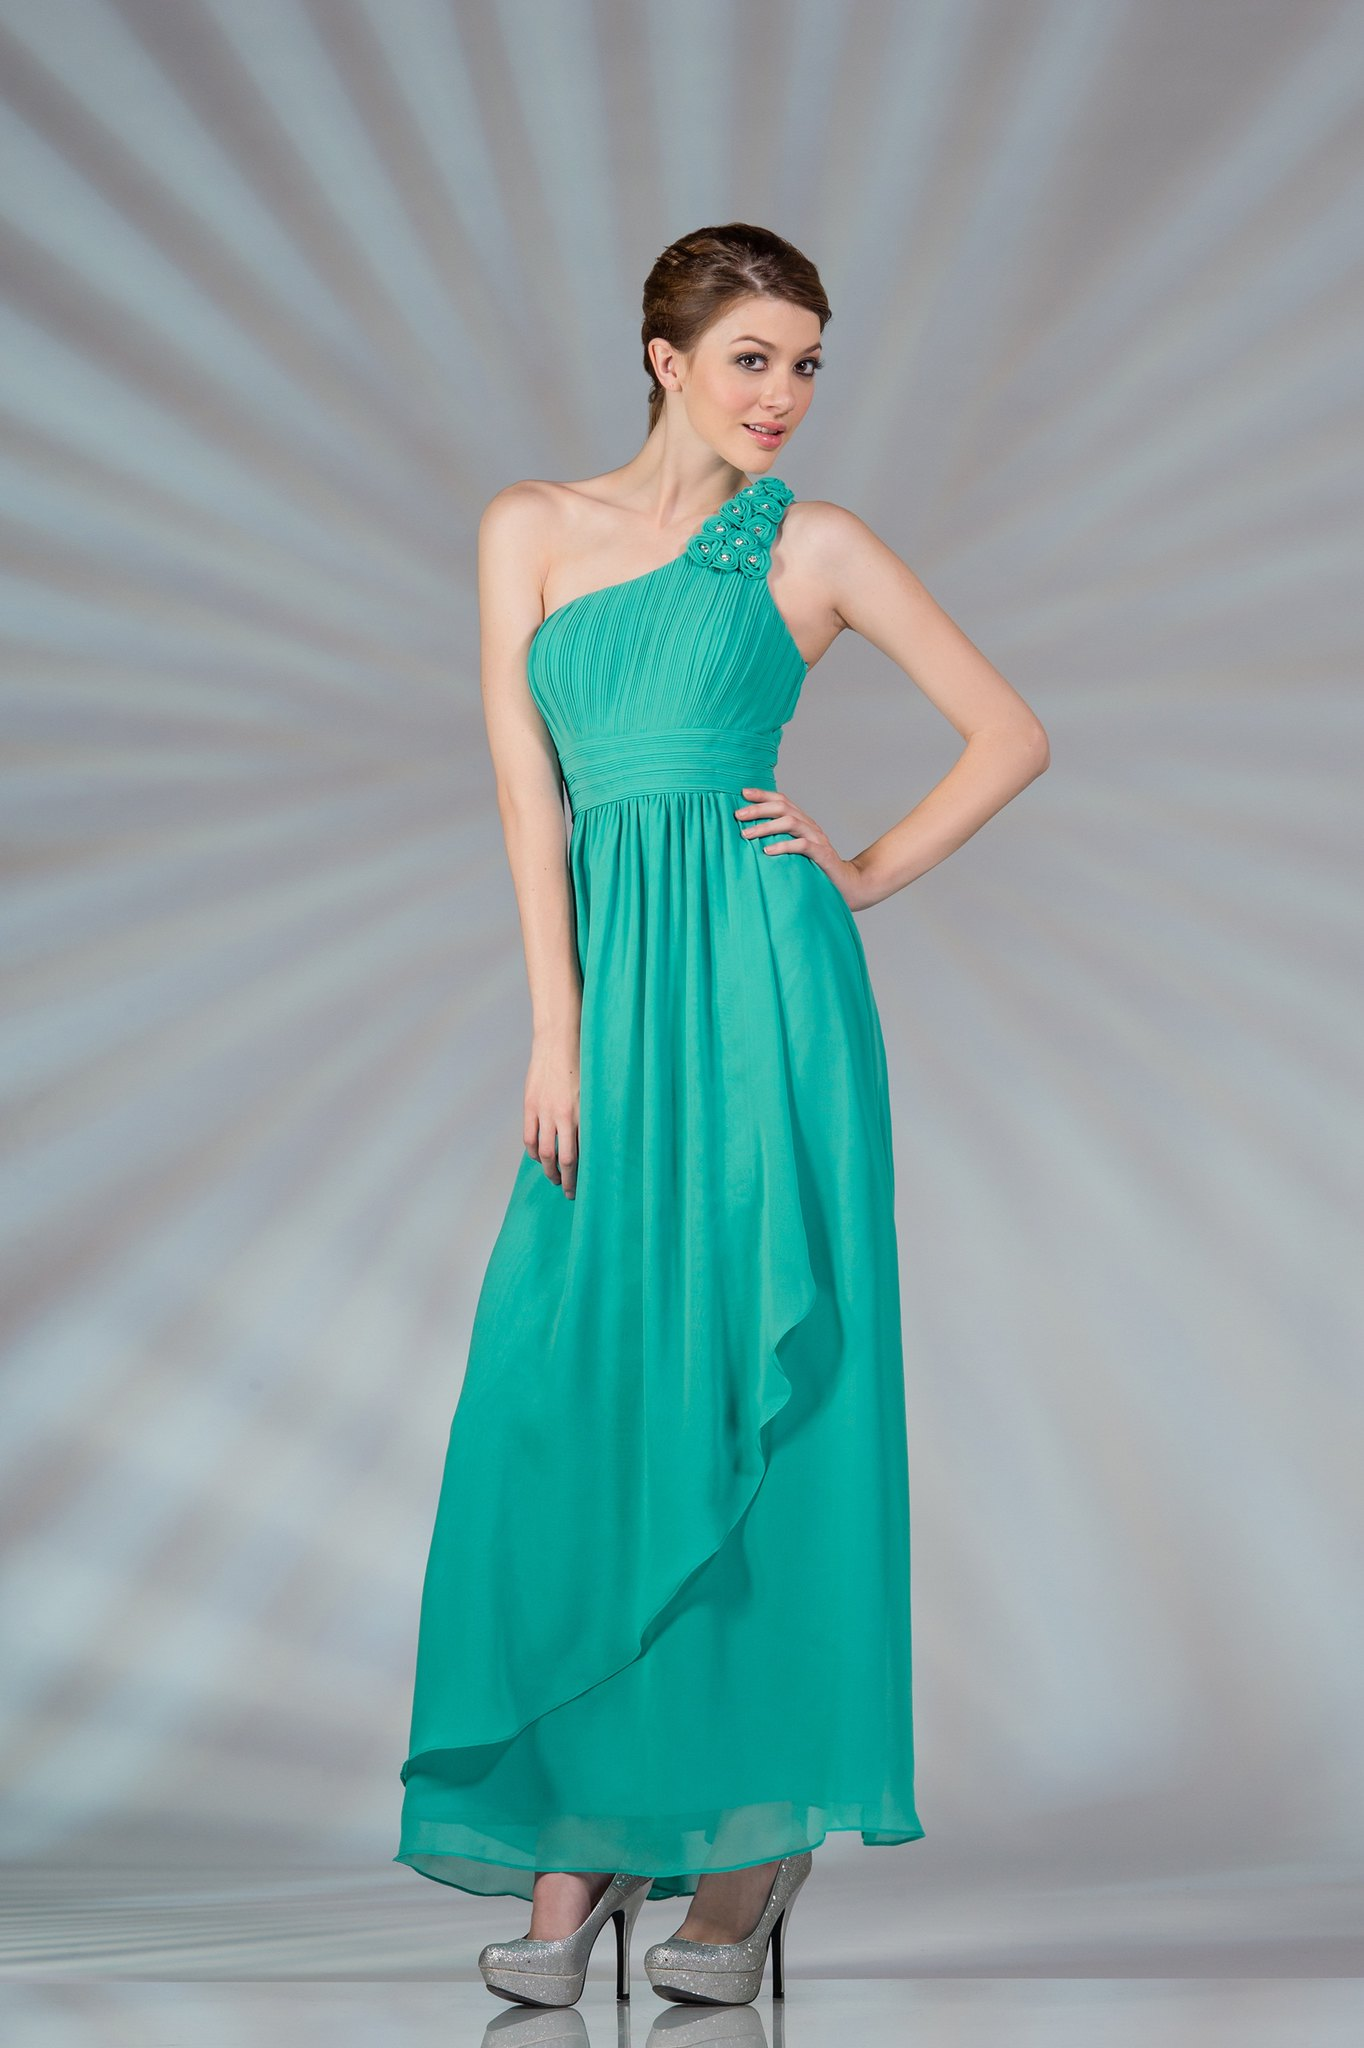 Flowy Dress Elegant One Shoulder Chiffon Prom Bridesmaid